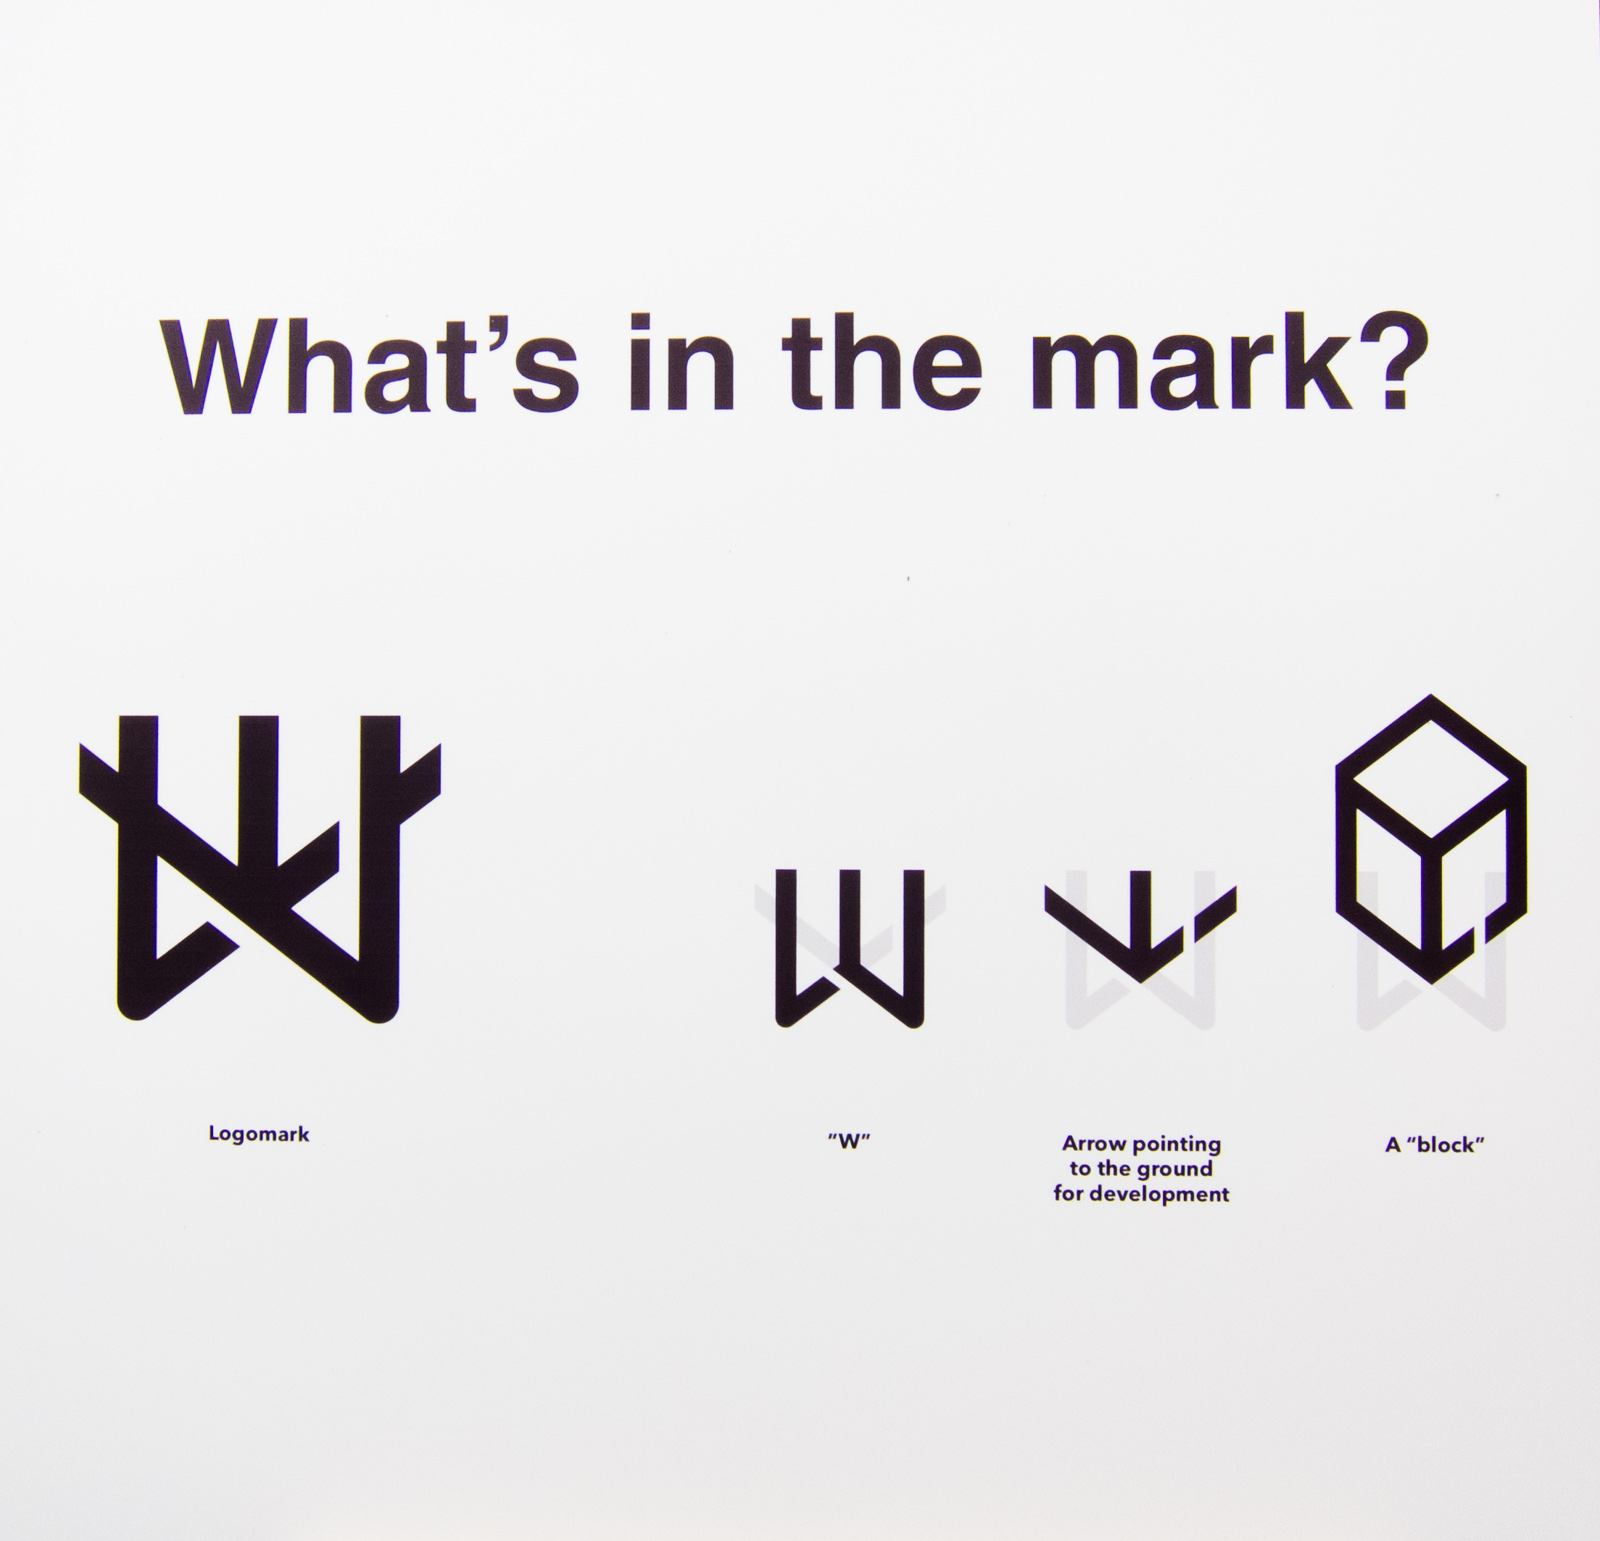 What's in the mark?